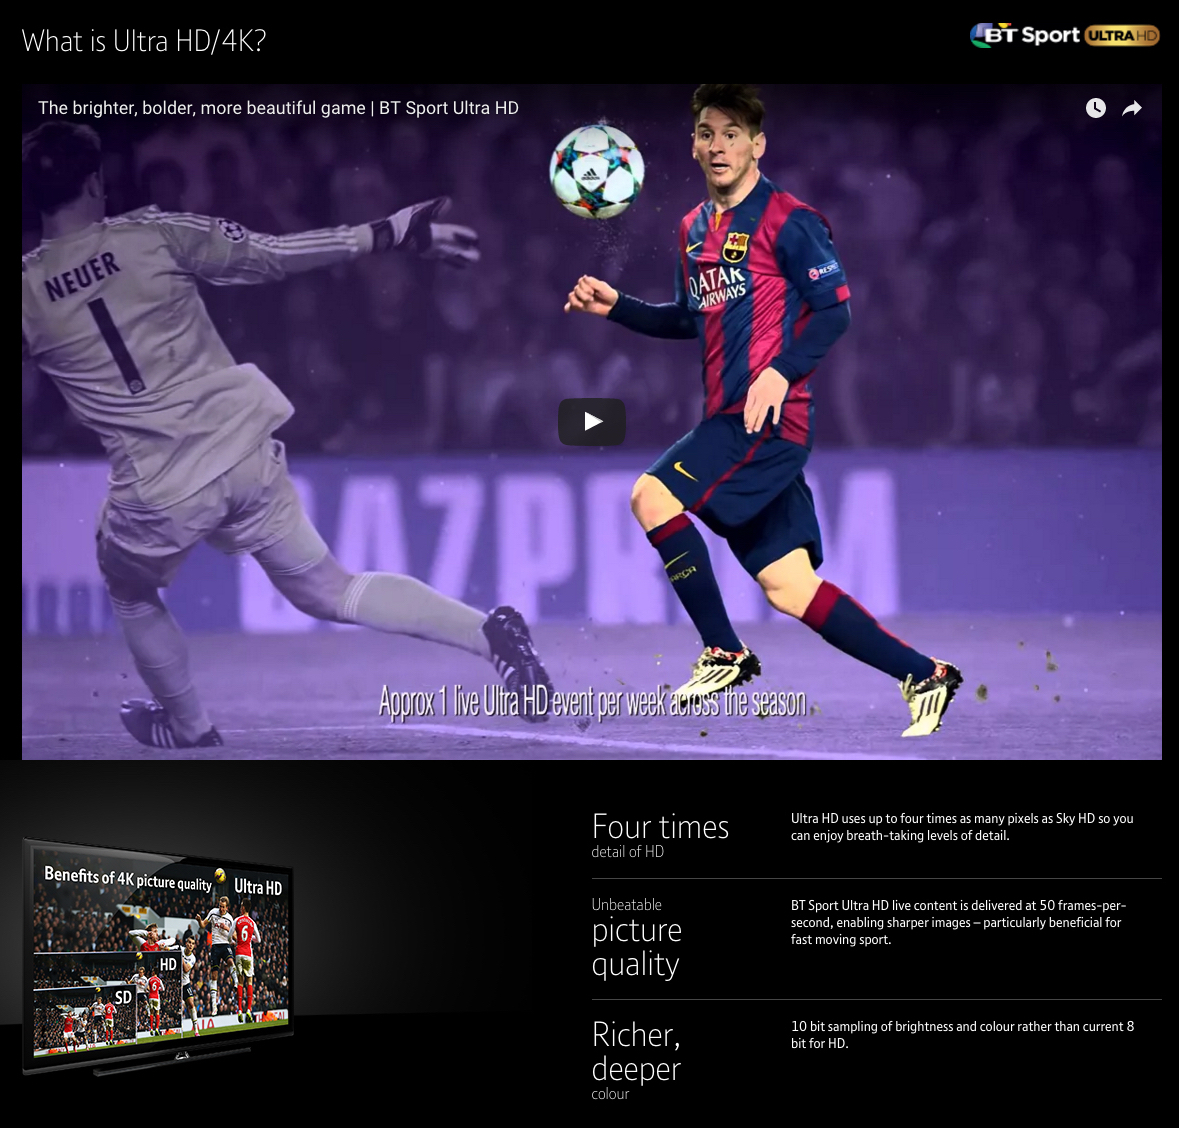 Ultra HD sport package from BT in the UK - Print screen from their website